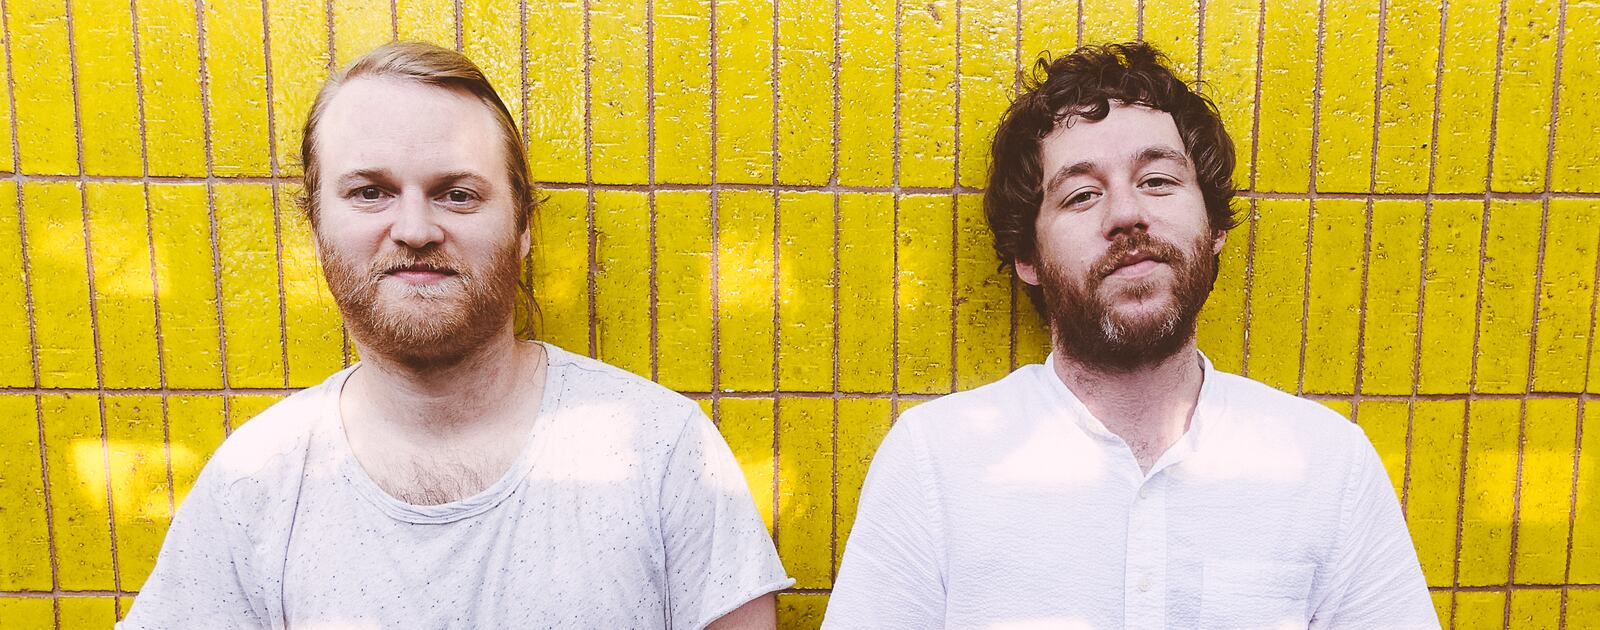 Michael Stein and Kyle Dixon stand in front of a yellow wall